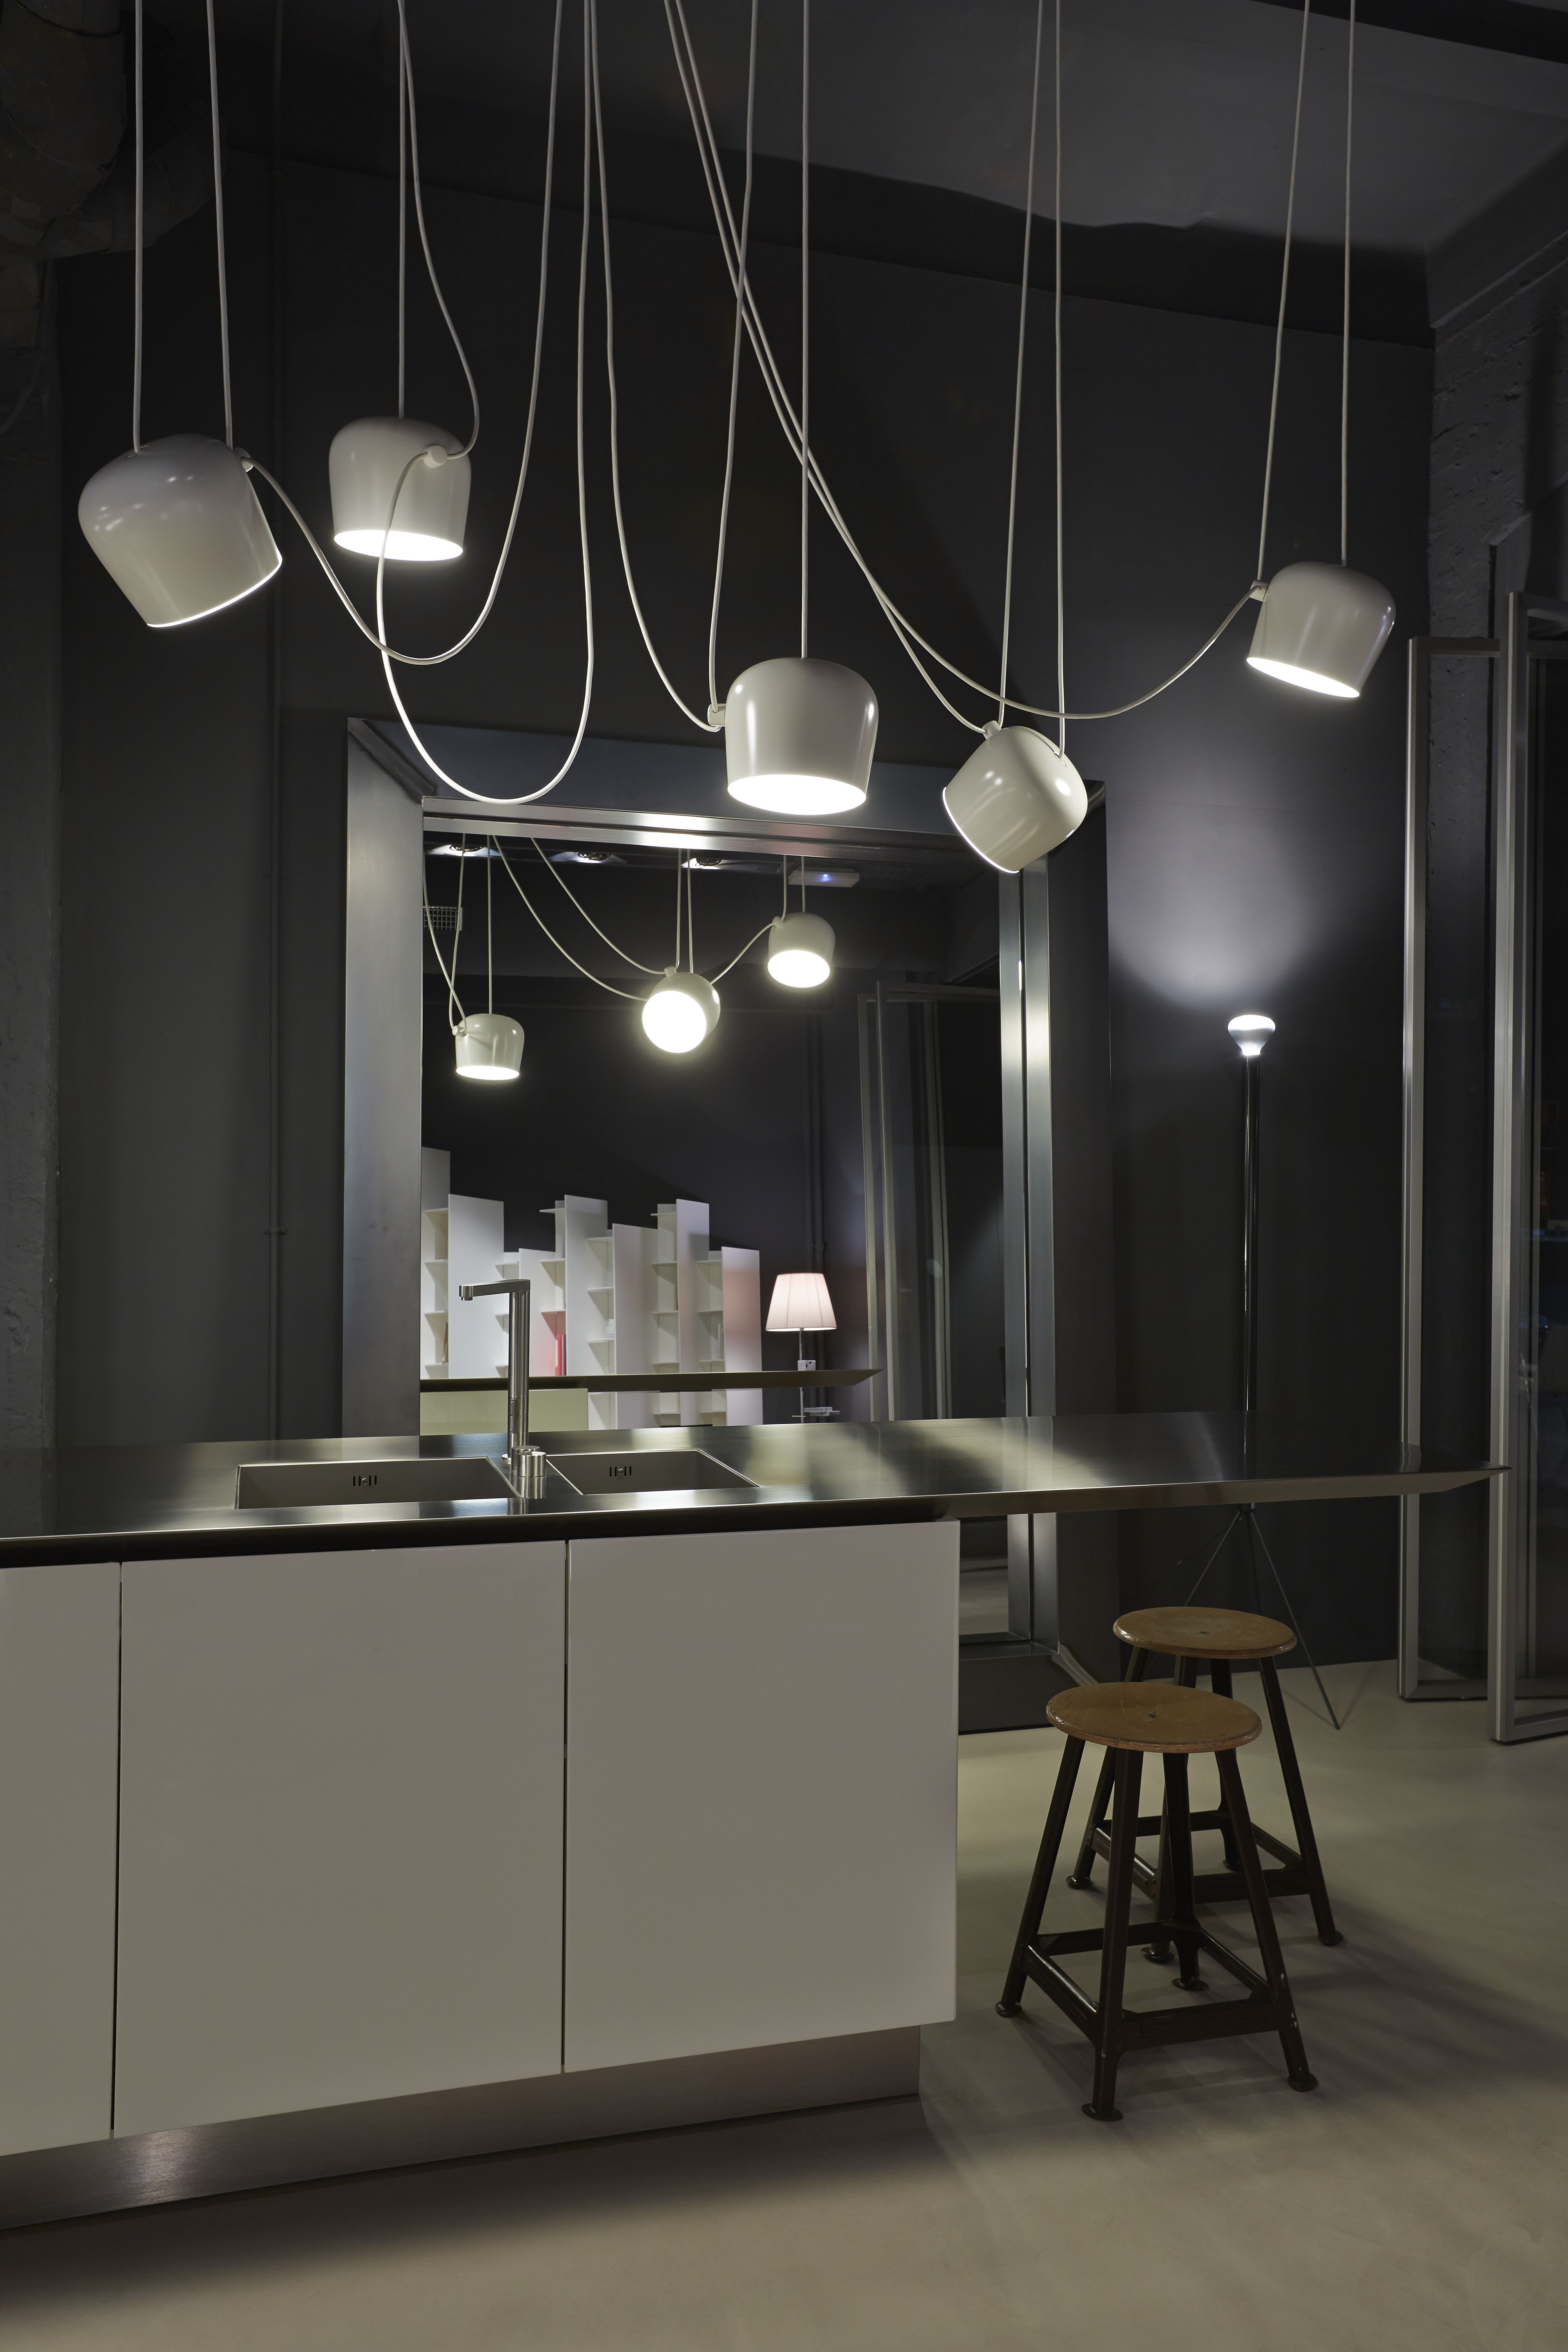 Ronan and erwan bouroullecs aim modern pendant lights for flos ronan and erwan bouroullecs aim modern pendant lights for flos add a modern element to this aloadofball Gallery